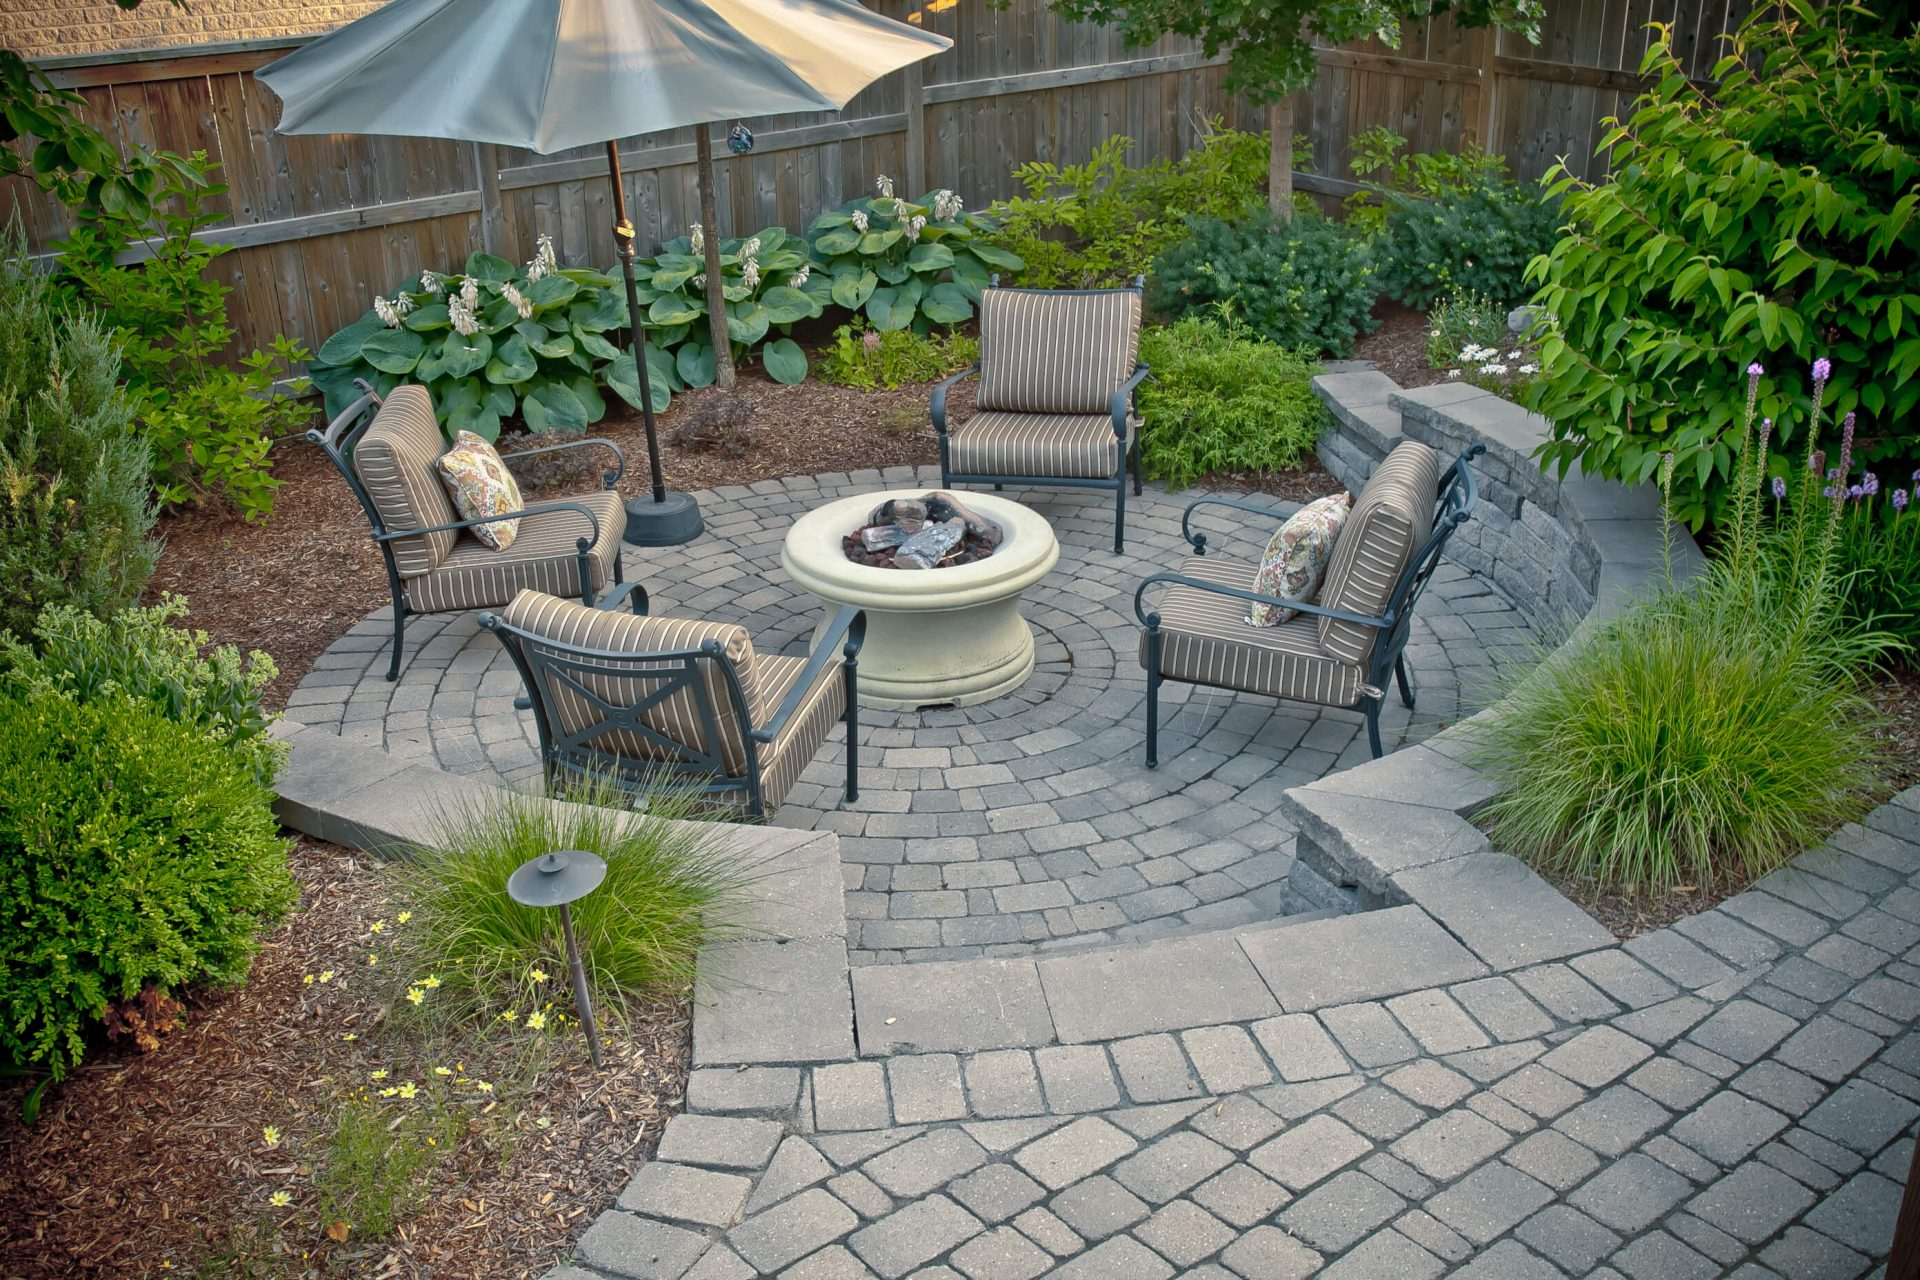 Backyard Landscaping For Patios Fire Pits More Tlc with Landscaping Images For Backyard